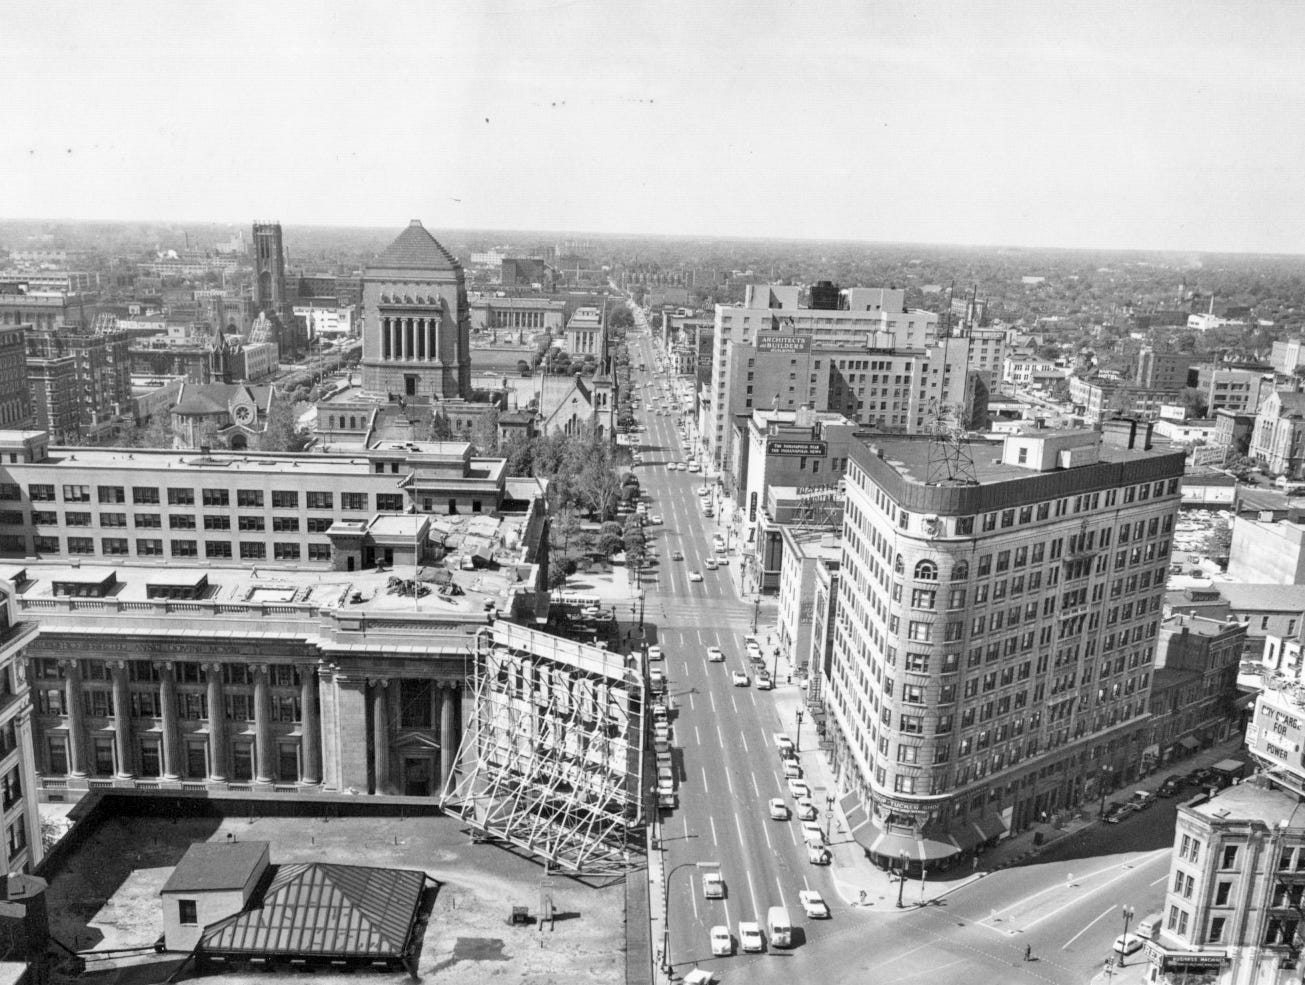 Looking north on Pennsylvania in 1958. The flatiron building is the Knights of Pythias building which was raised for the construction of the Indiana National Bank Building (Regions Tower). The Federal Building is to the left.